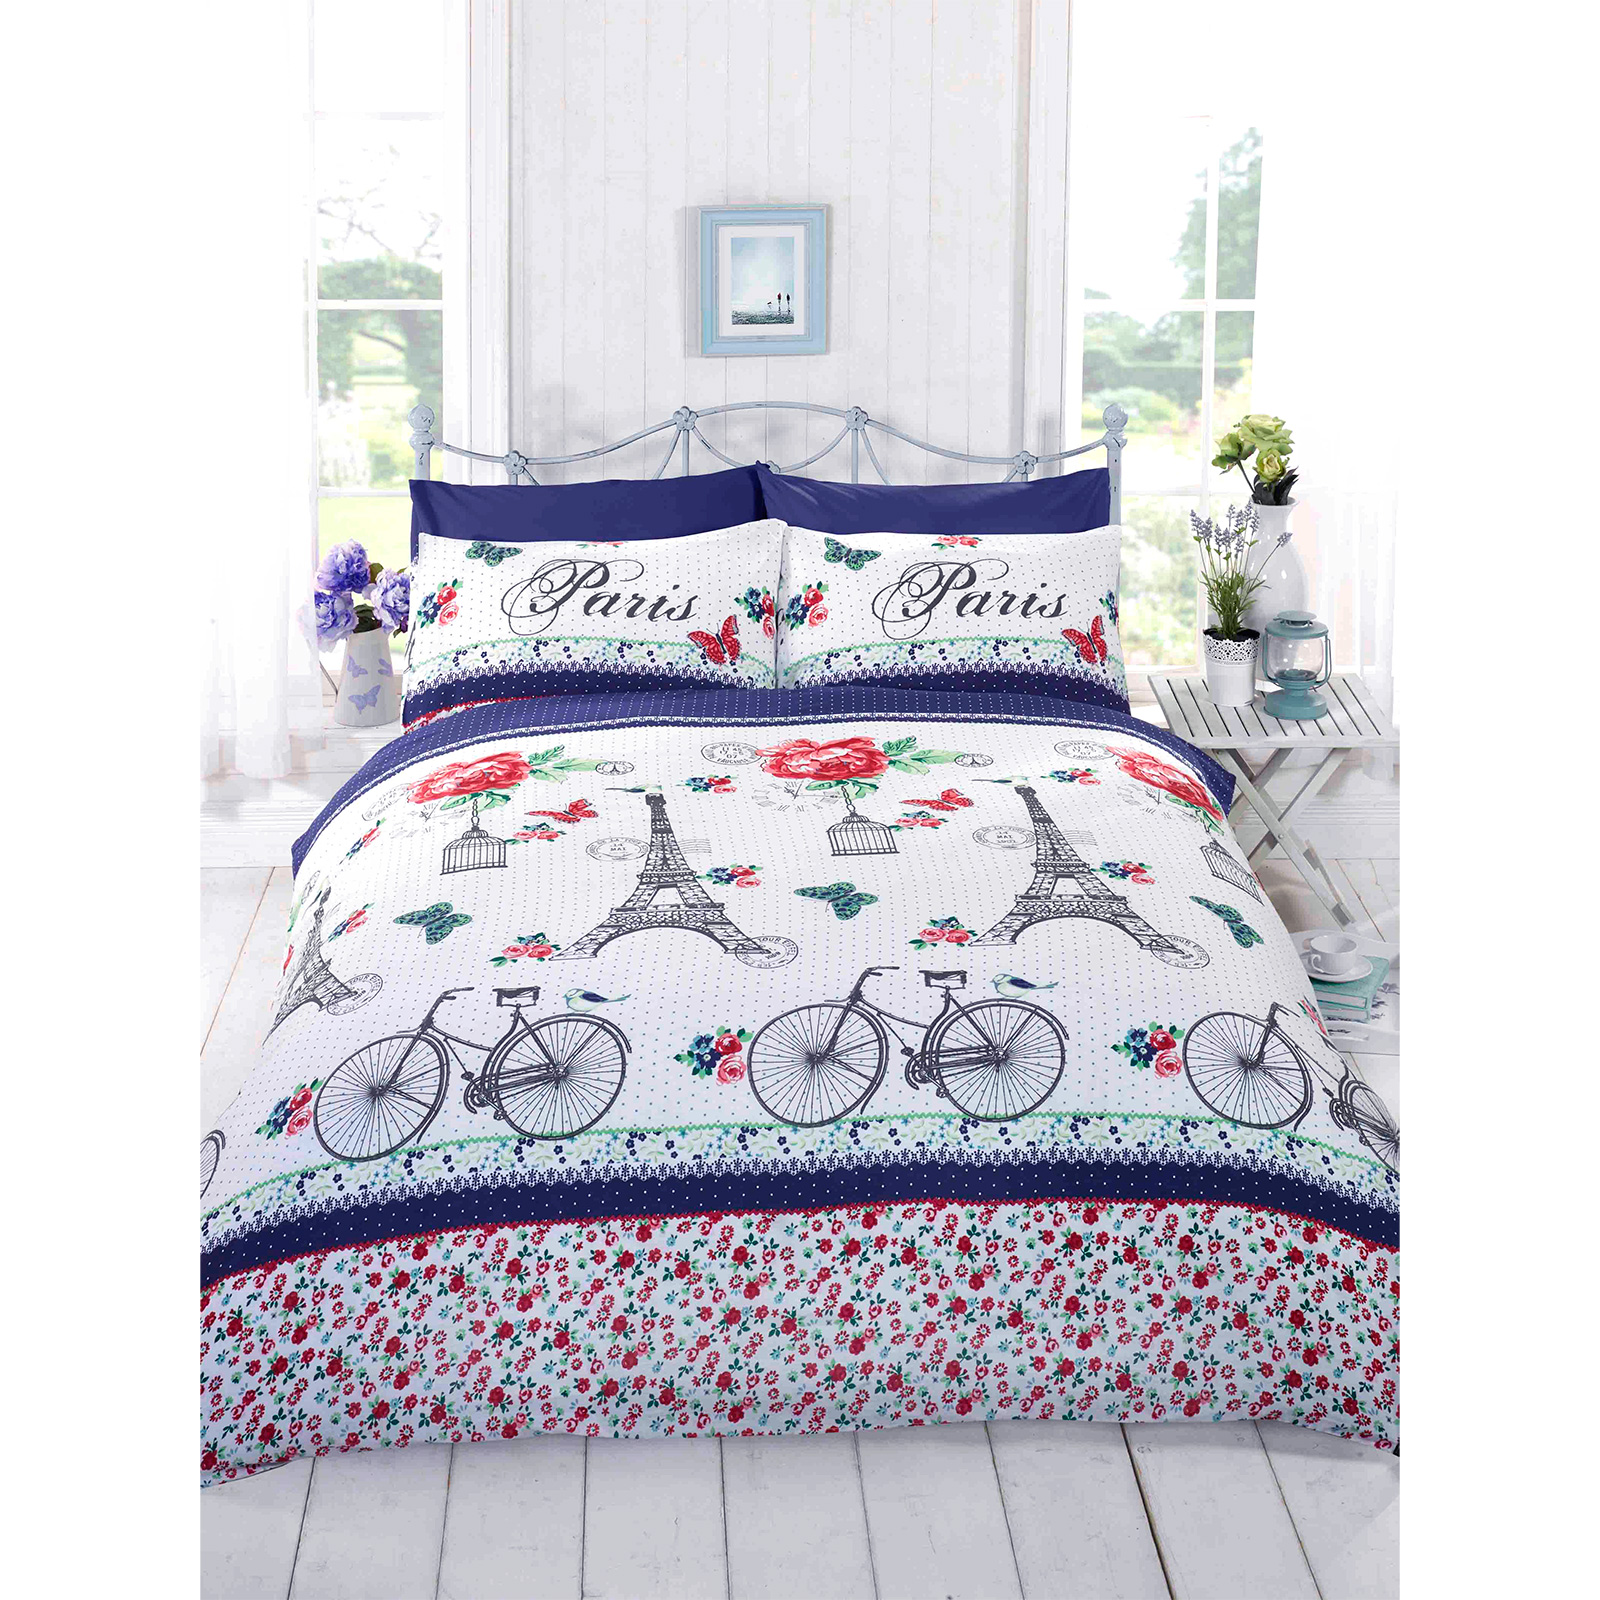 French chic paris duvet cover girls floral rose butterfly for Paris bedding